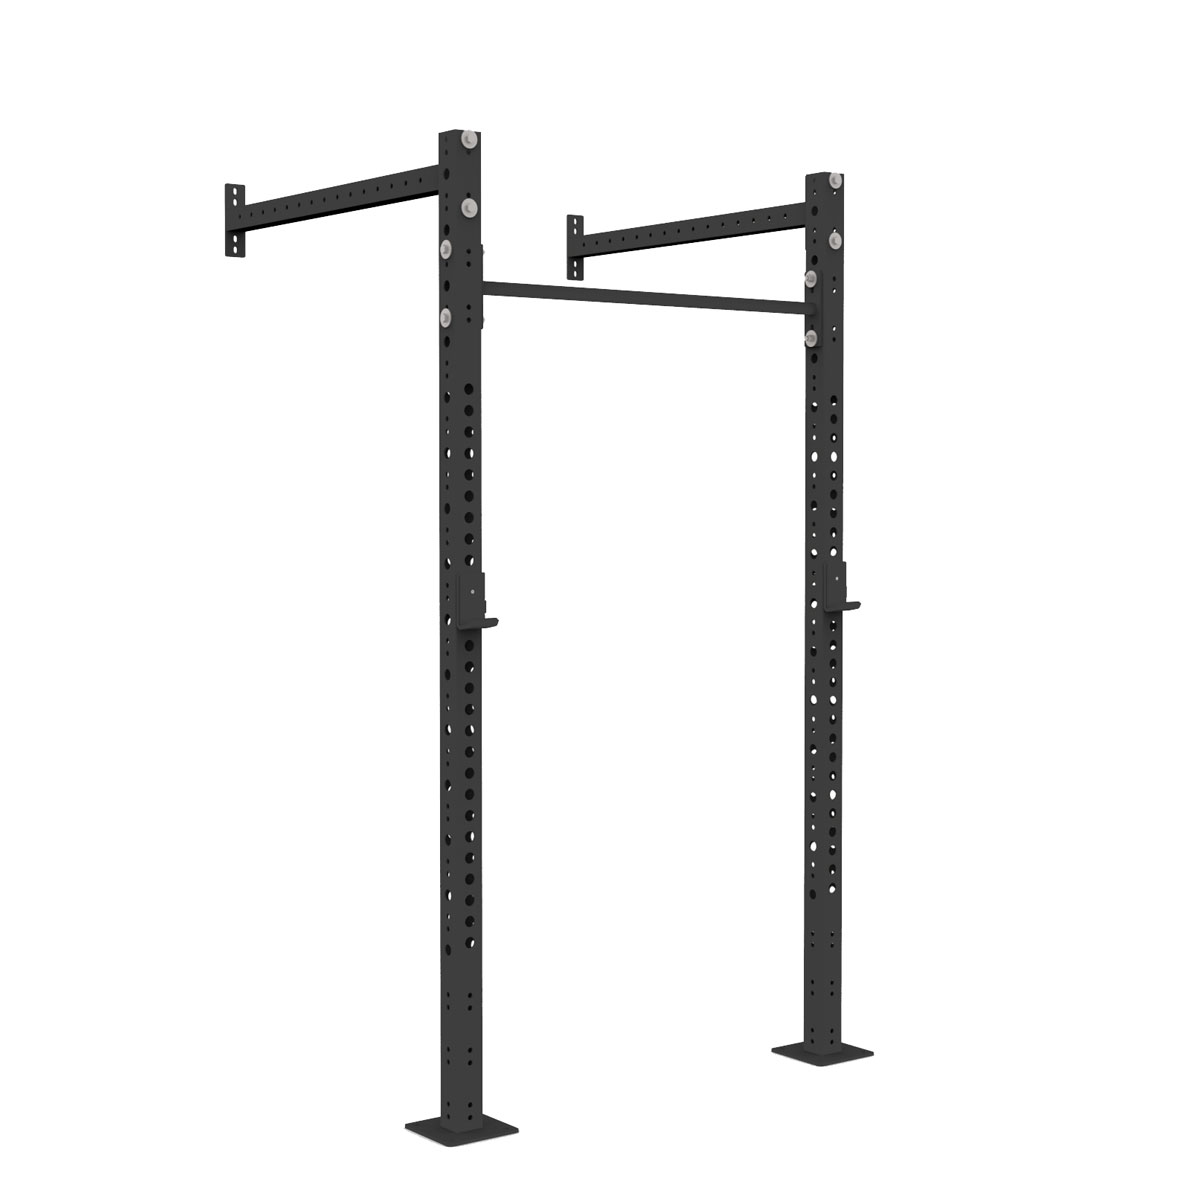 4x4 Wall-Mount Pull-up Rig